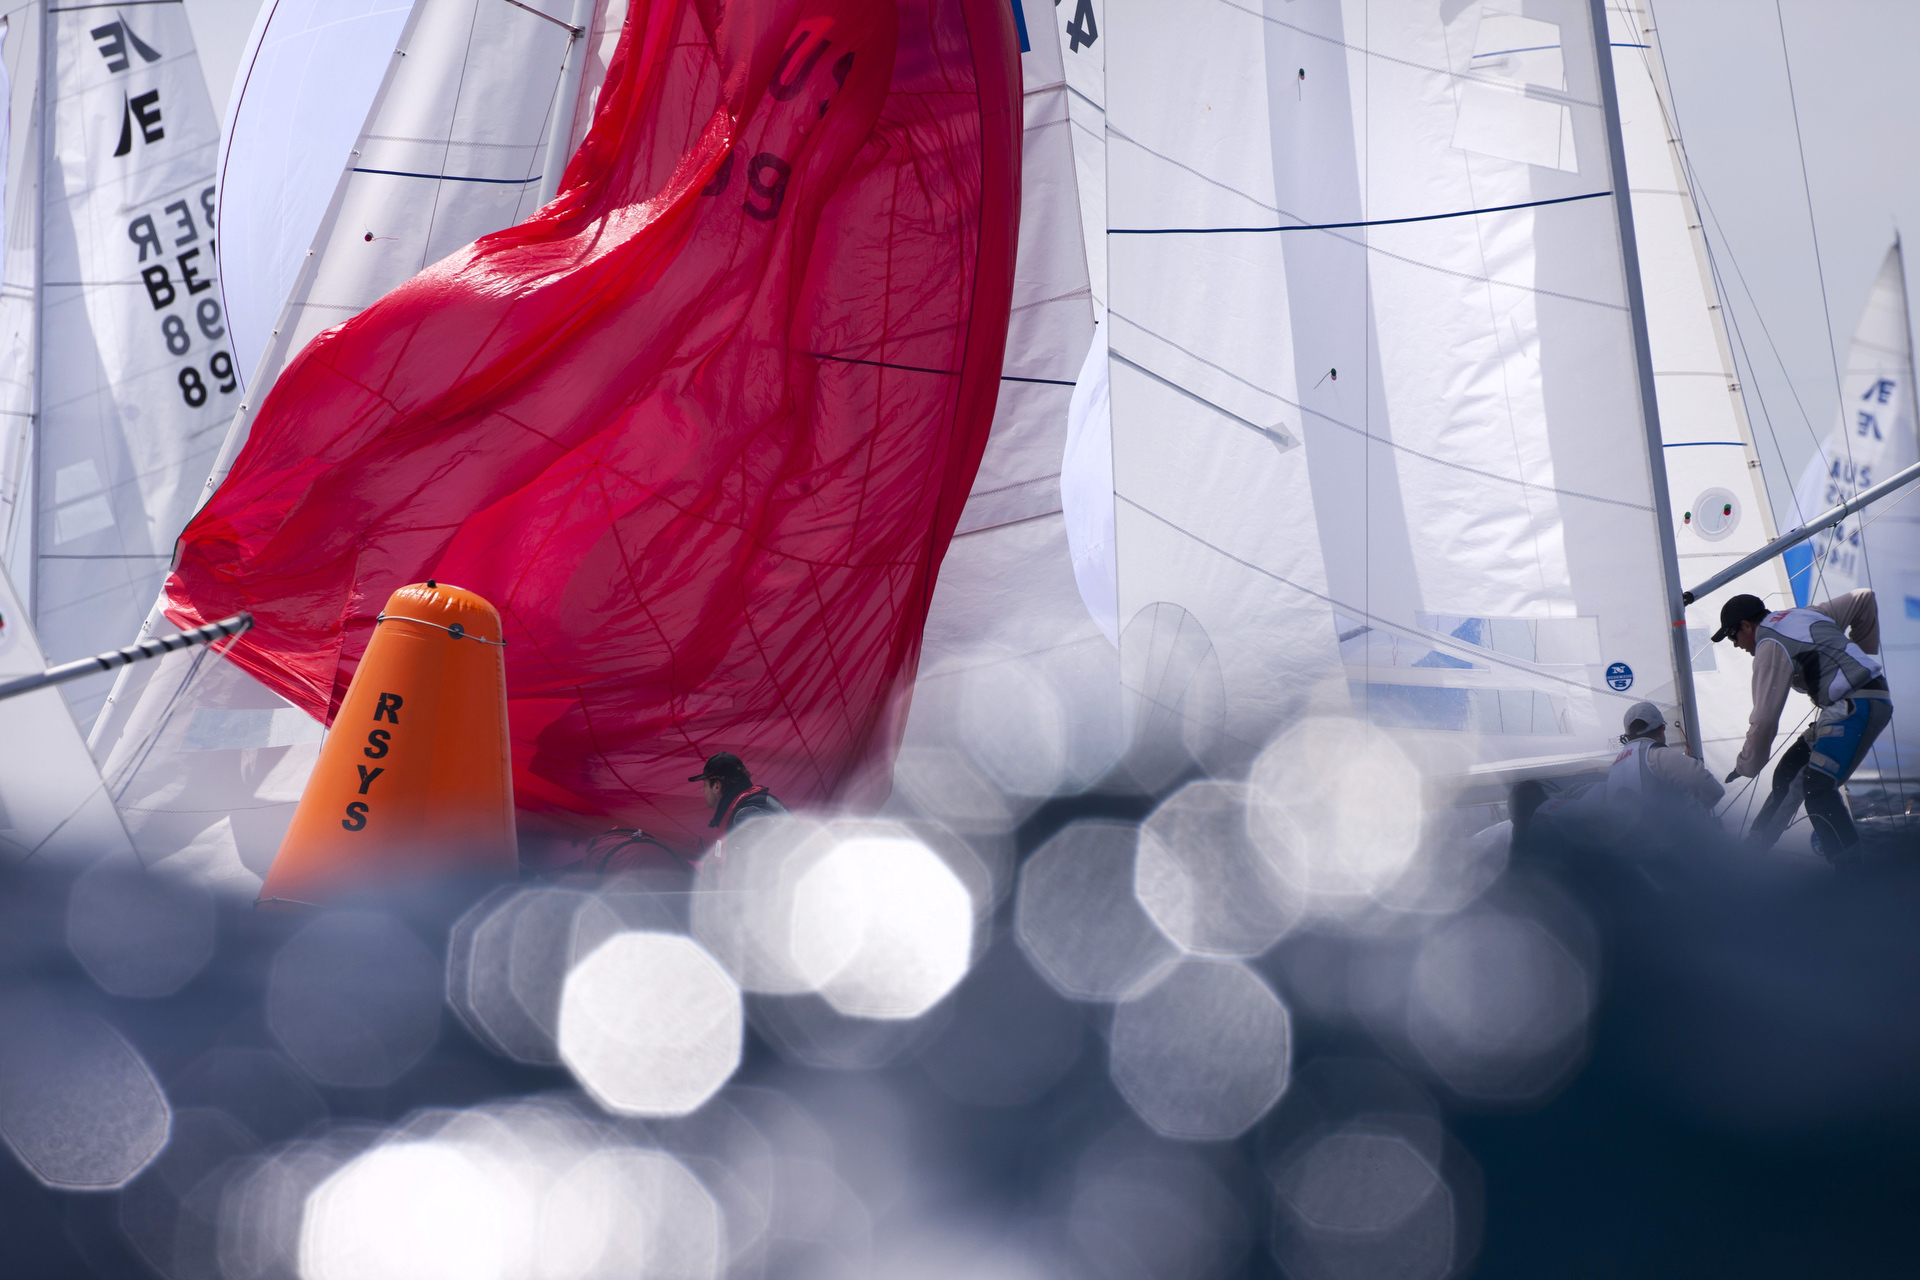 Sydney sailing photographer, aerial photography, Etchells, spinnaker, wave, yacht, regatta, ocean racing